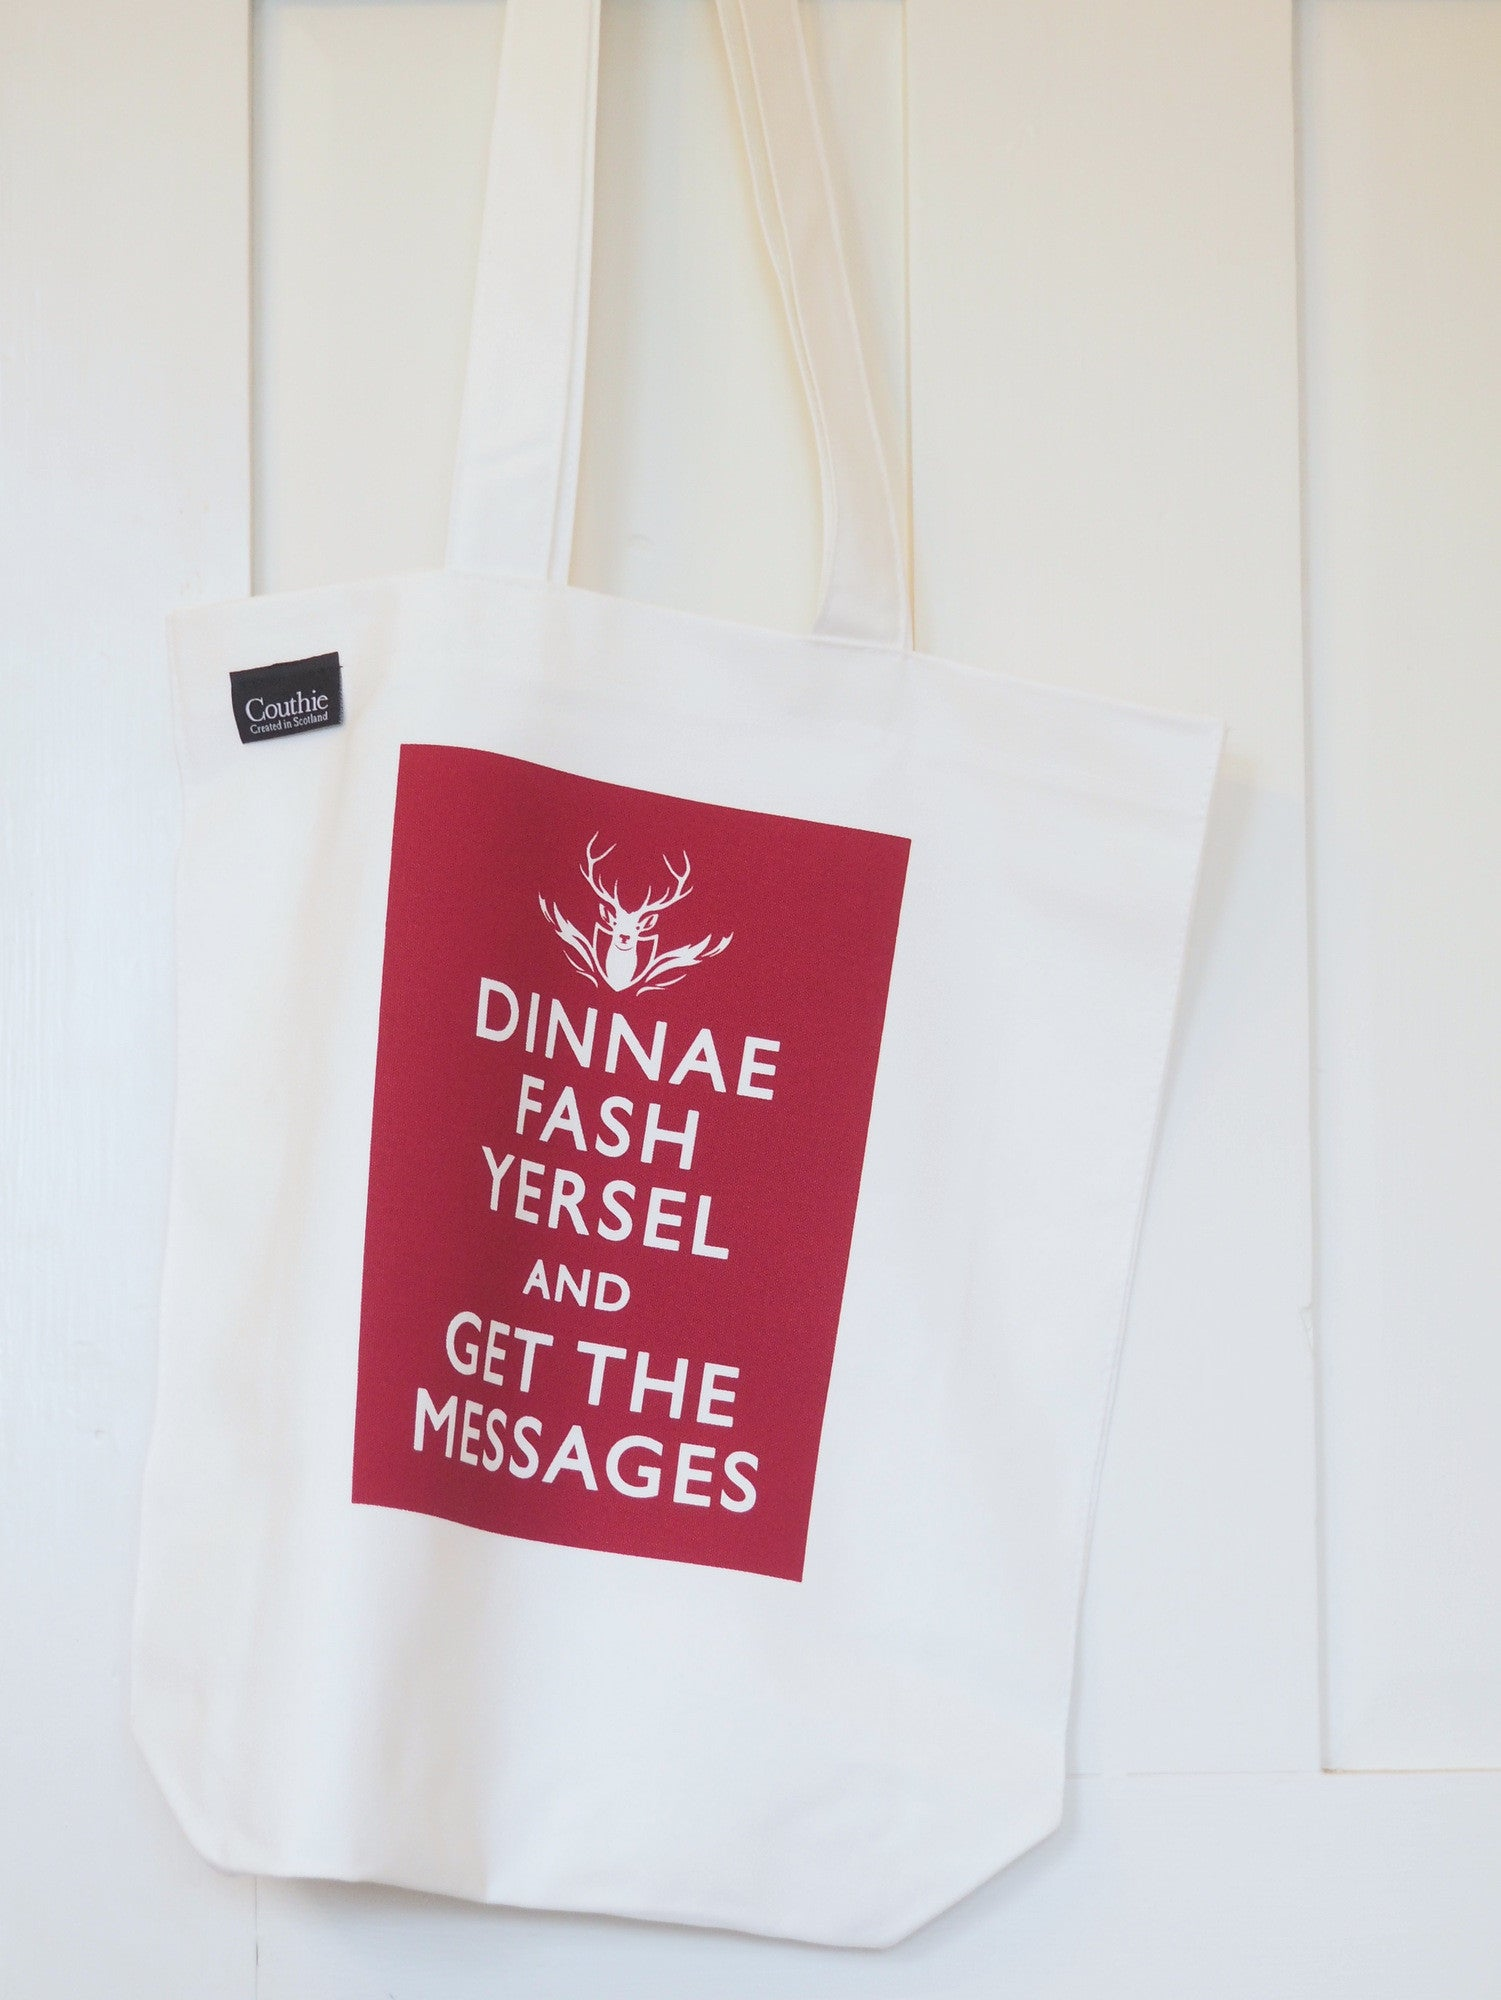 Dinnae Fash - Get the Messages - Berry Collection Canvas Shopping Bags